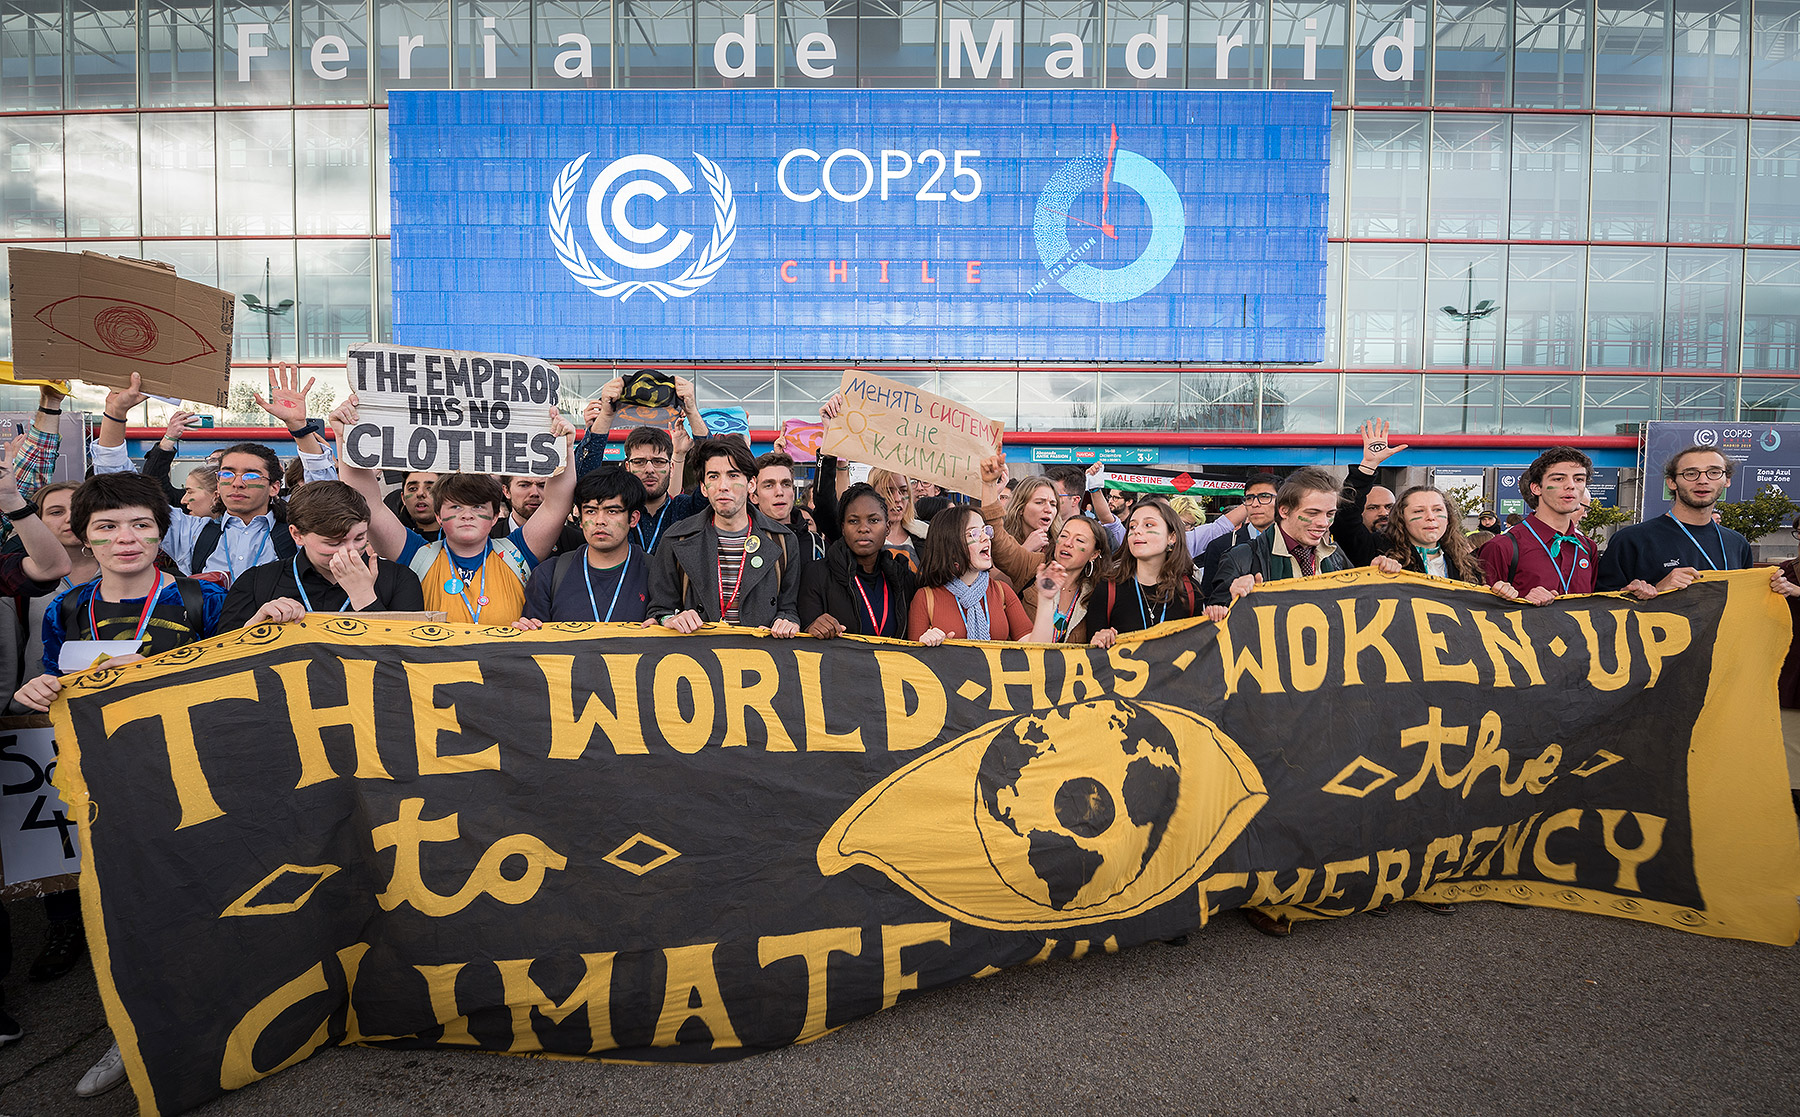 Gathered outside the COP25 venue, young people hold a banner stating 'the world has woken up to the climate emergency'. The question is, have the politicians? Photo: LWF/Albin Hillert